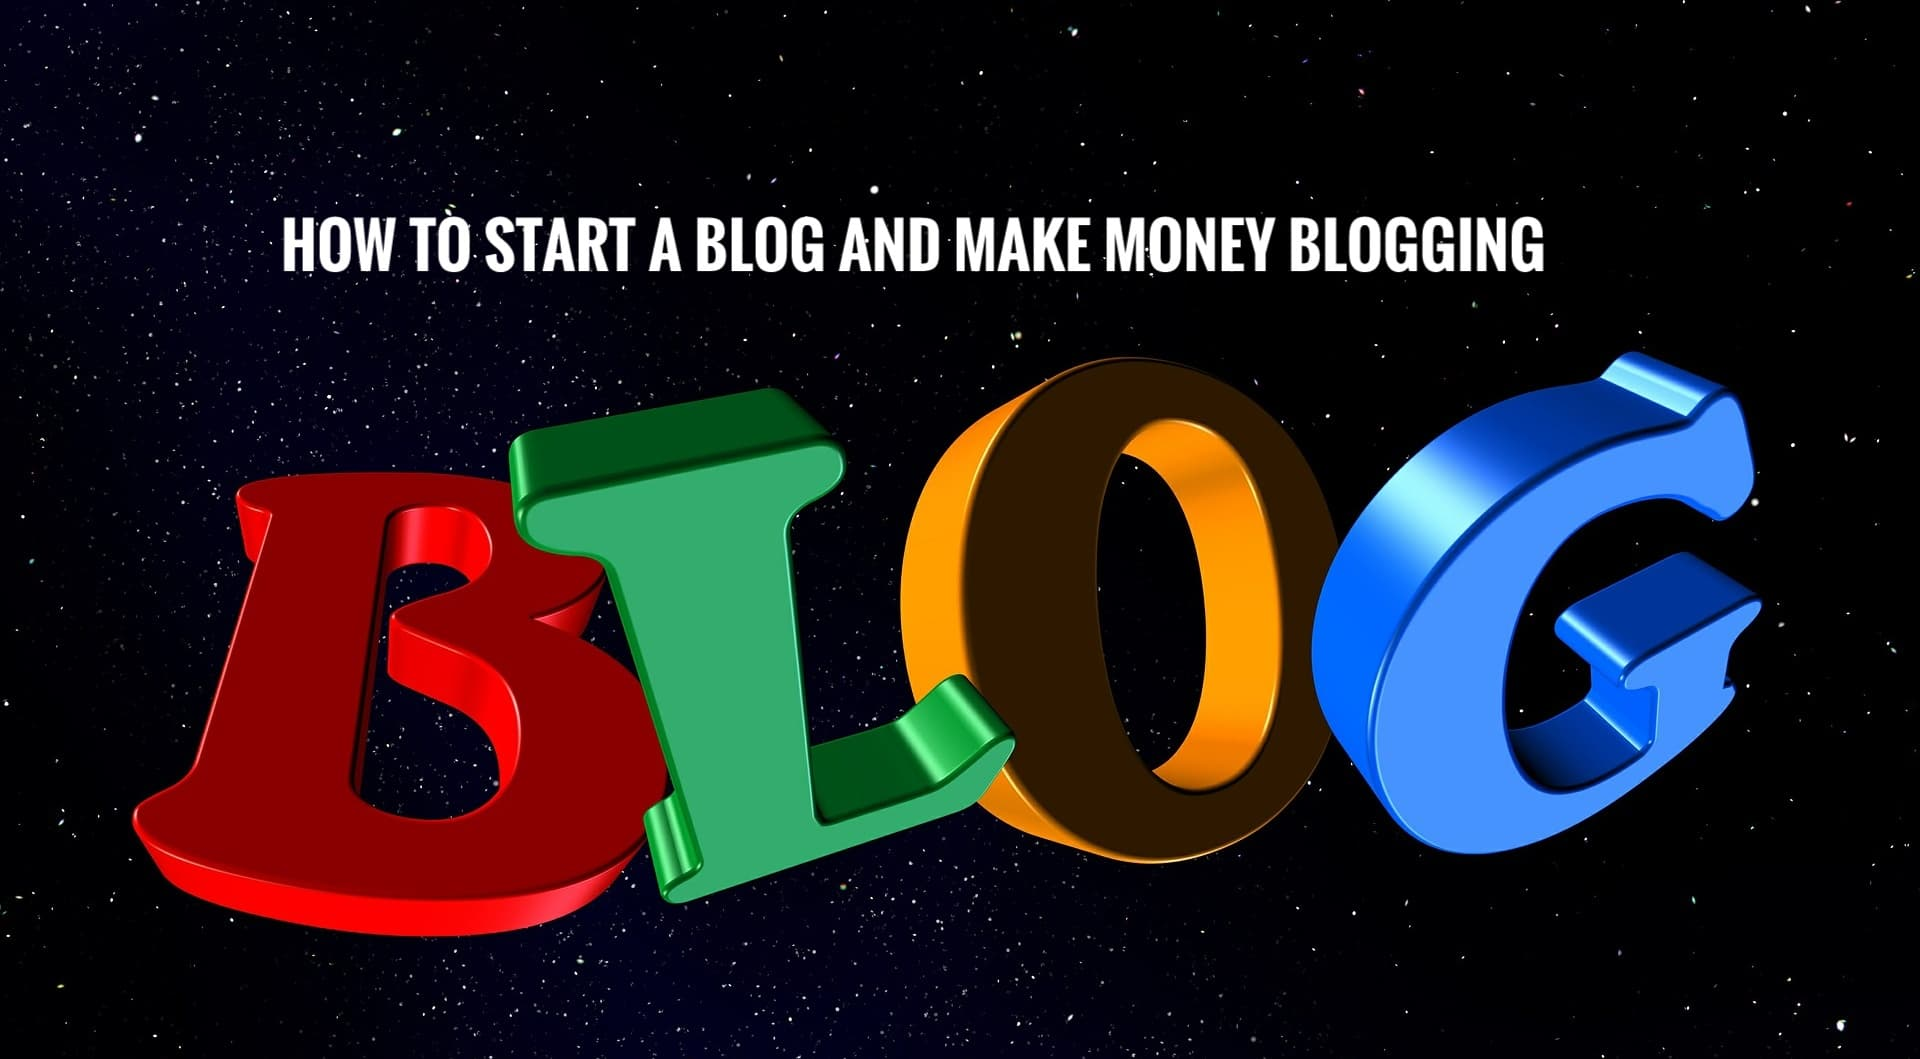 Image that displays our topic on how to start a blog